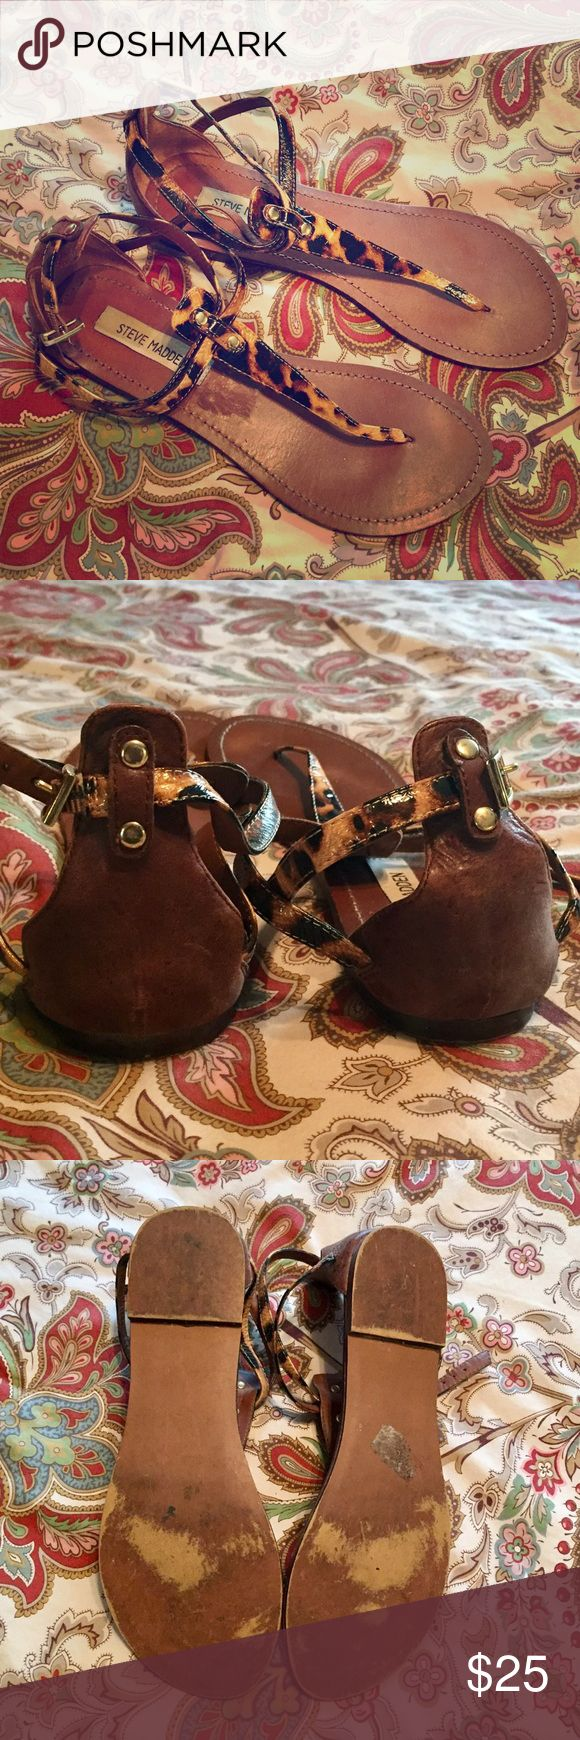 Steve Madden leopard sandals Size 9 Steve Madden leopard print ankle strap sandals. In great condition with typical wear on bottoms. No noticeable wear when wearing. Steve Madden Shoes Sandals